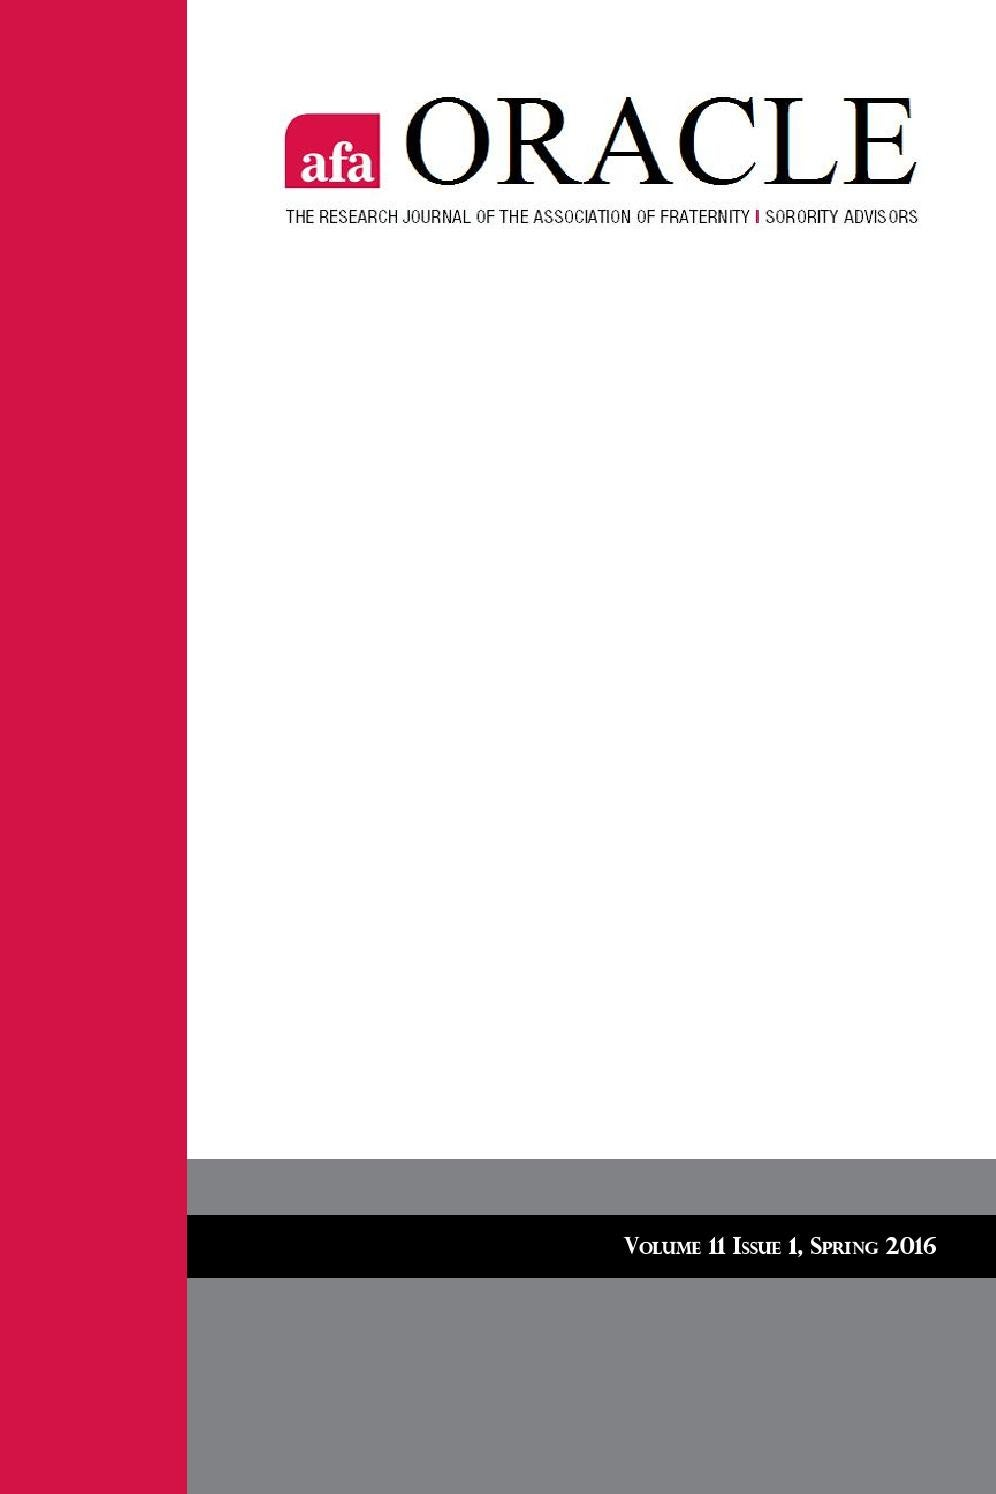 Oracle: Volume 11, Issue 1, Spring 2016 by Association of Fraternity